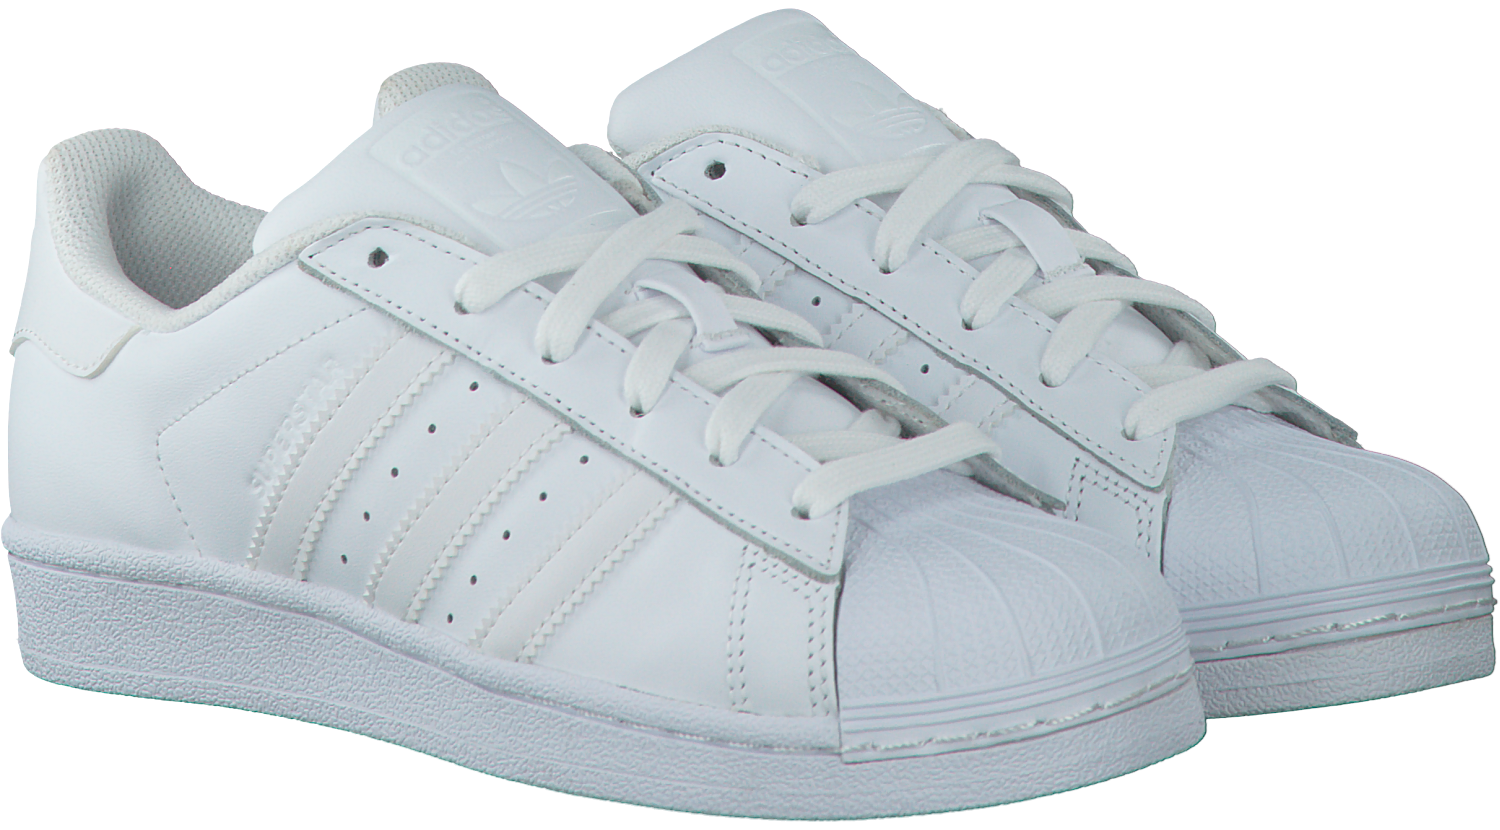 4a97917a89a Witte ADIDAS Sneakers SUPERSTAR FOUNDATION - Omoda.nl